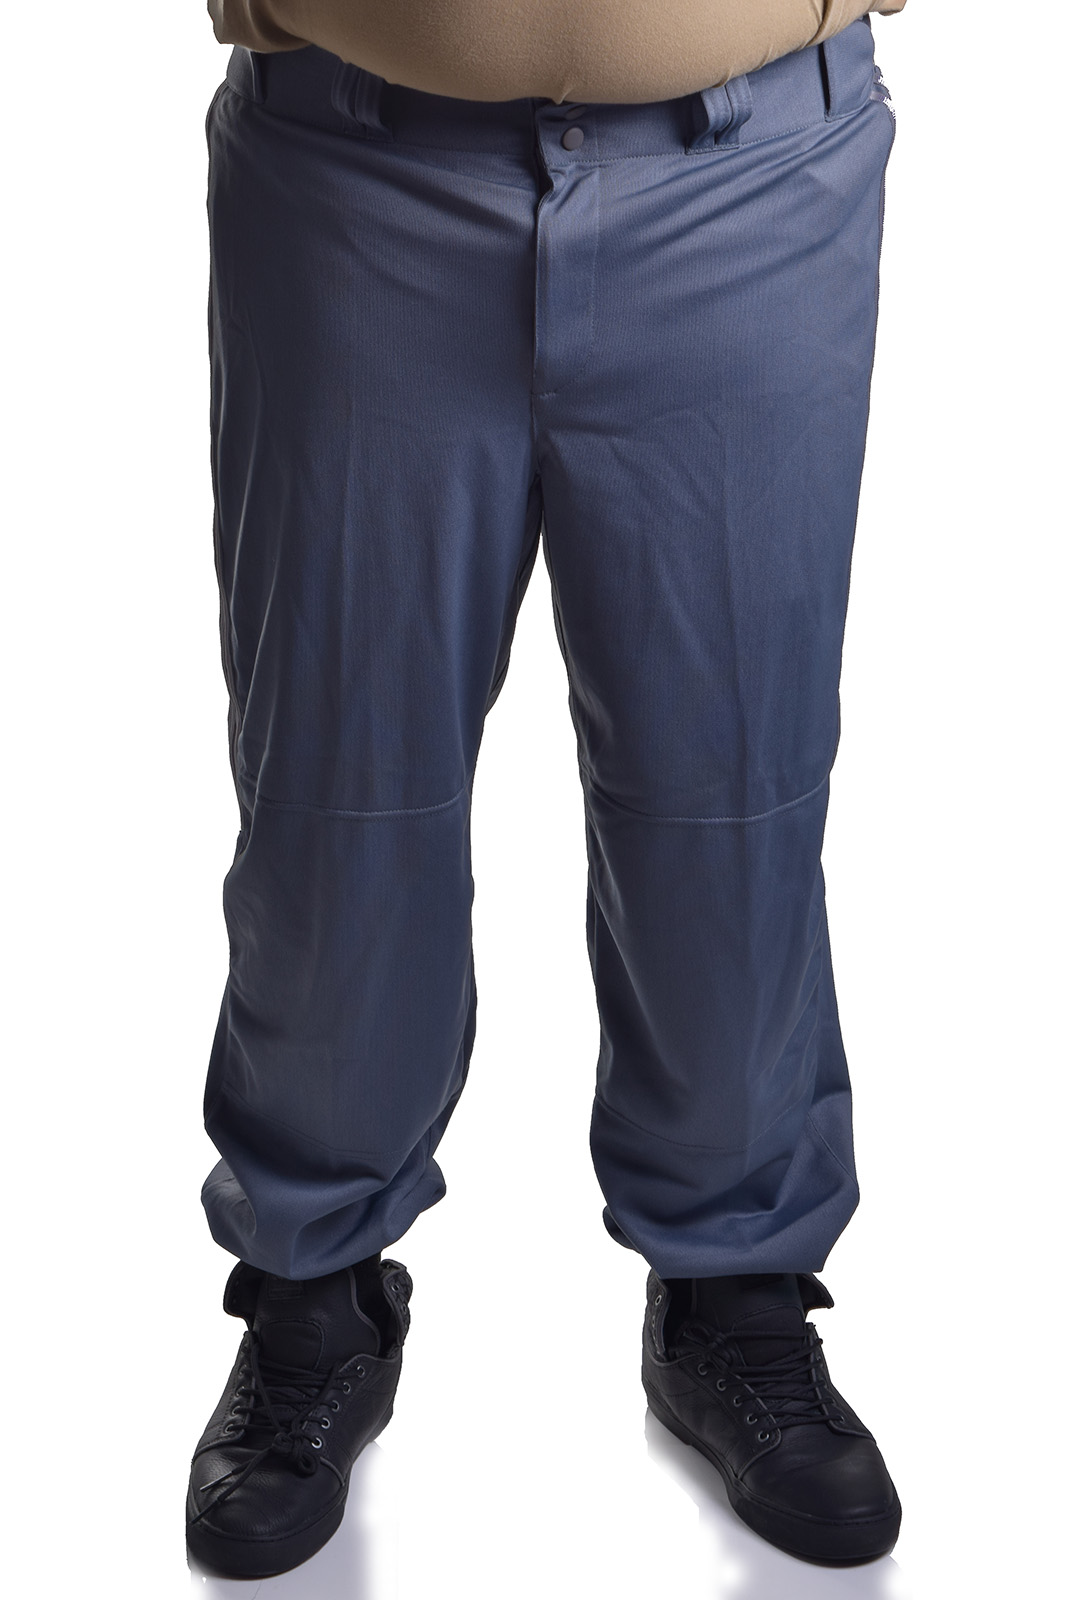 Men's Big and Tall Fleece Pant Open Bottom r LFT Thigh 2 Pockets, from $ 14 98 Prime. out of 5 stars 8. Champion. Mens Big and Tall Track Pants. from $ 29 99 Prime. out of 5 stars Russell Athletic. Men's Big and Tall Poly FLCE Pant W/Side Panel Open Bottom Ron LFT .